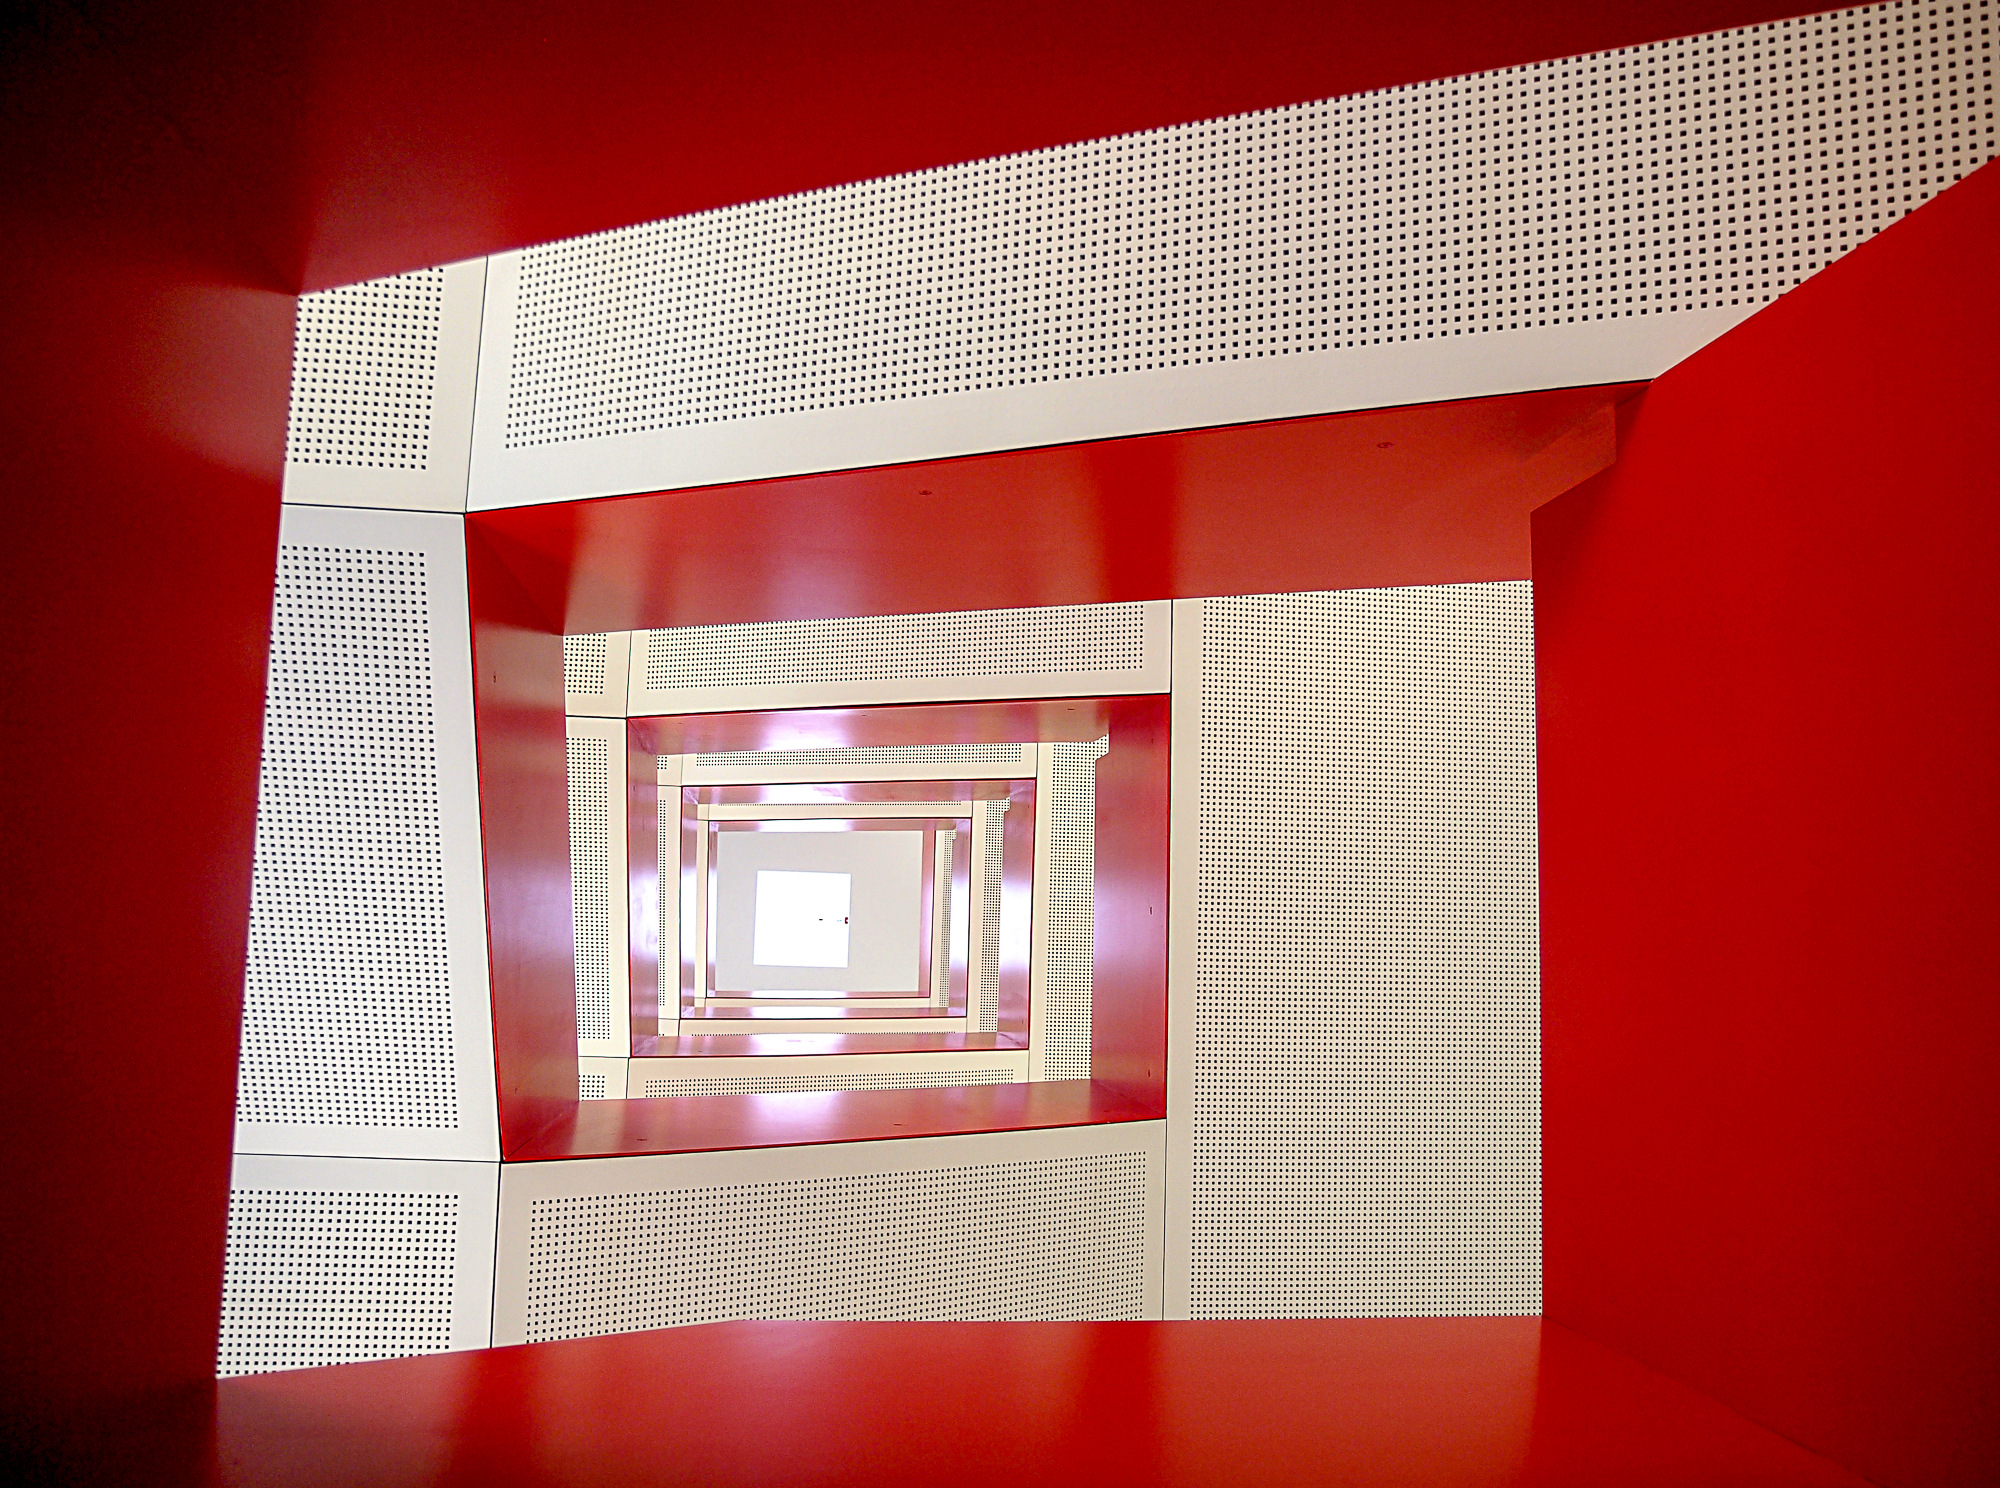 Staircase in red